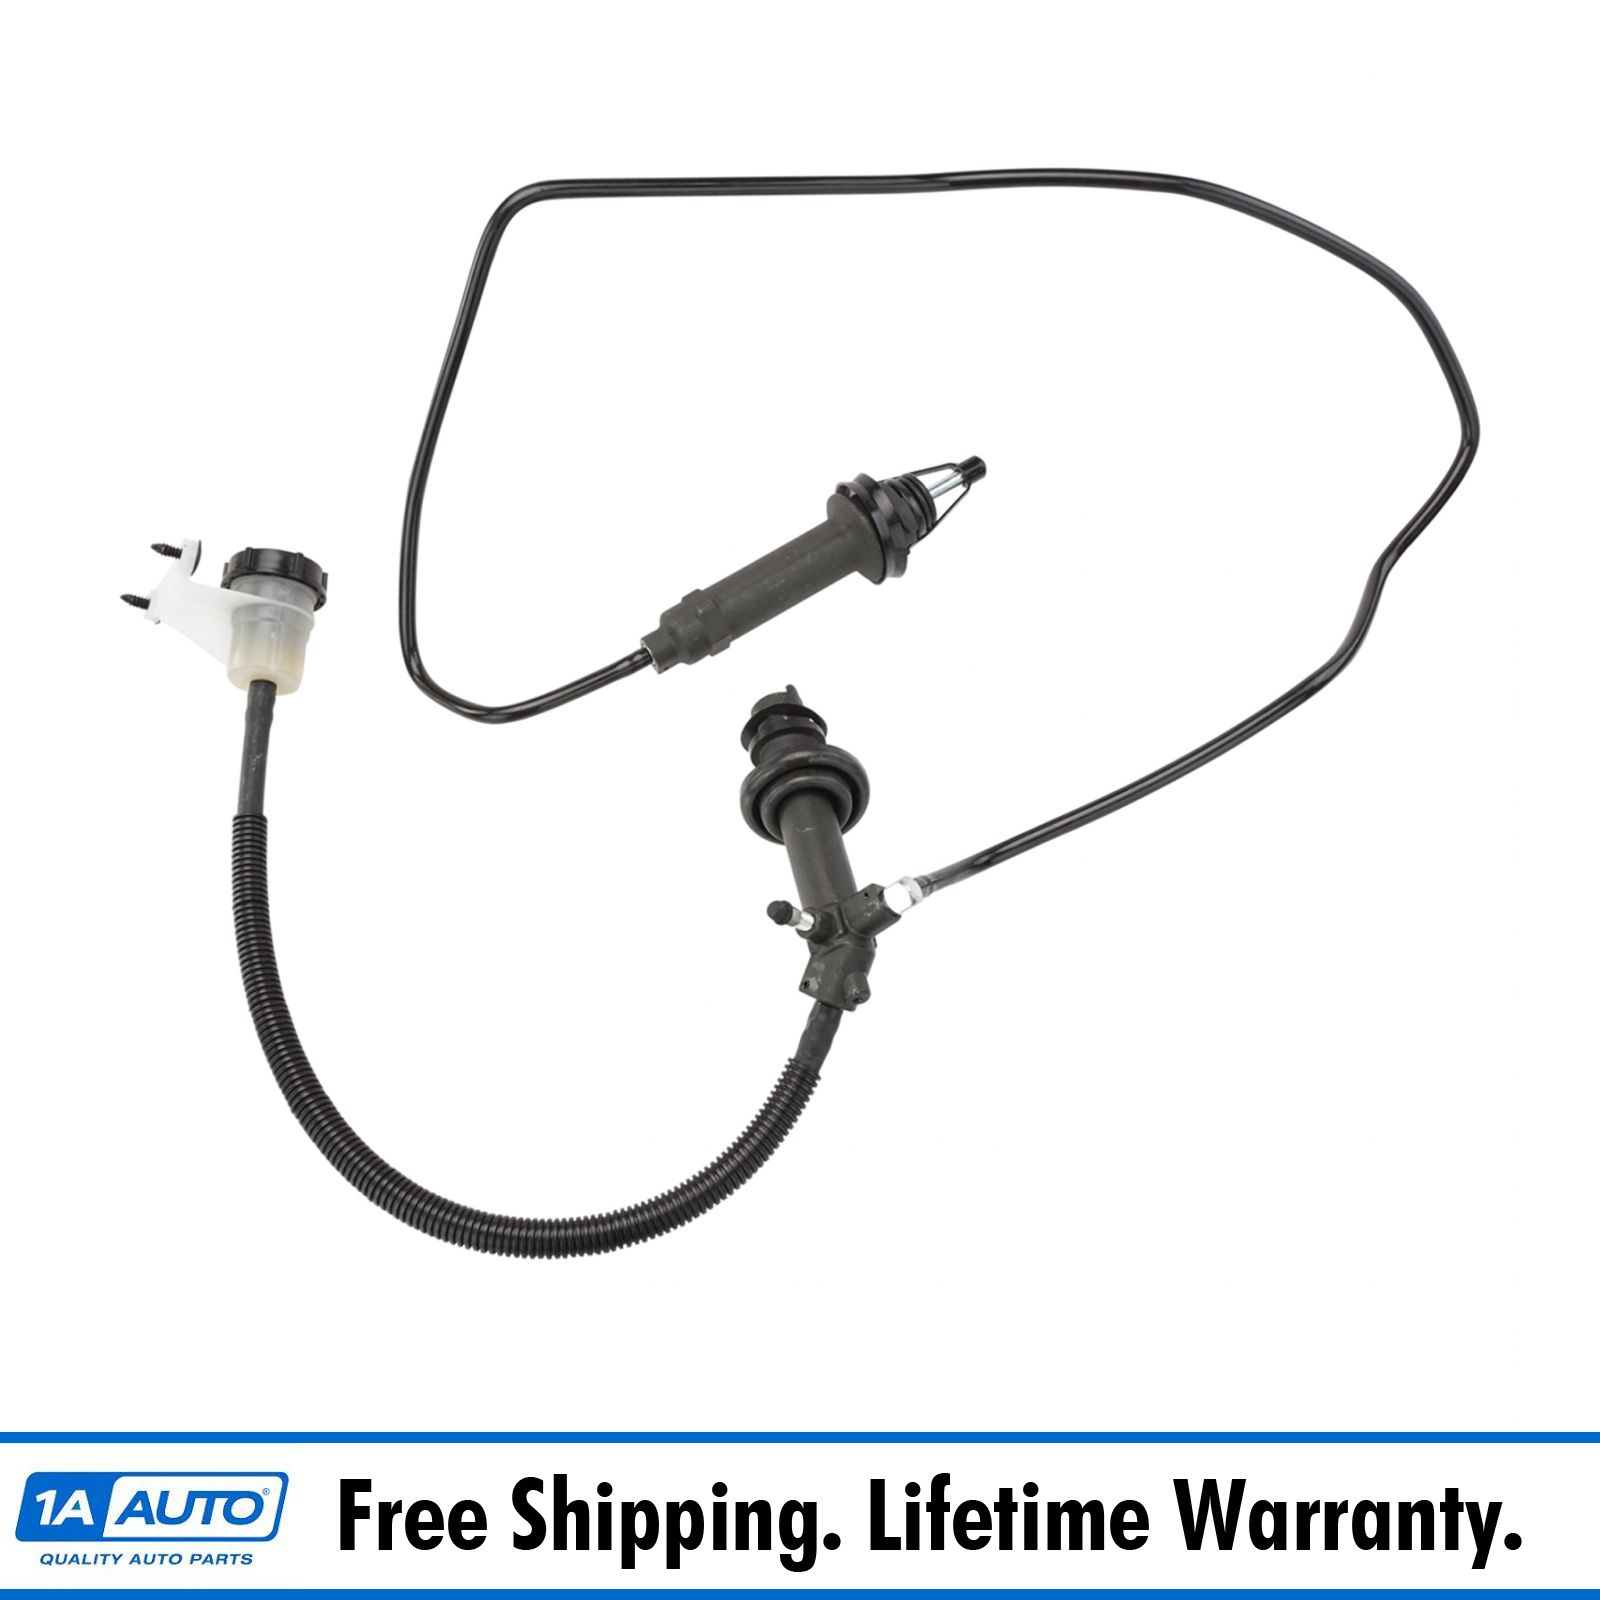 Clutch Master Slave Cylinder Installation Kit For Ford Super Duty 1955 F100 99 07 F250 350